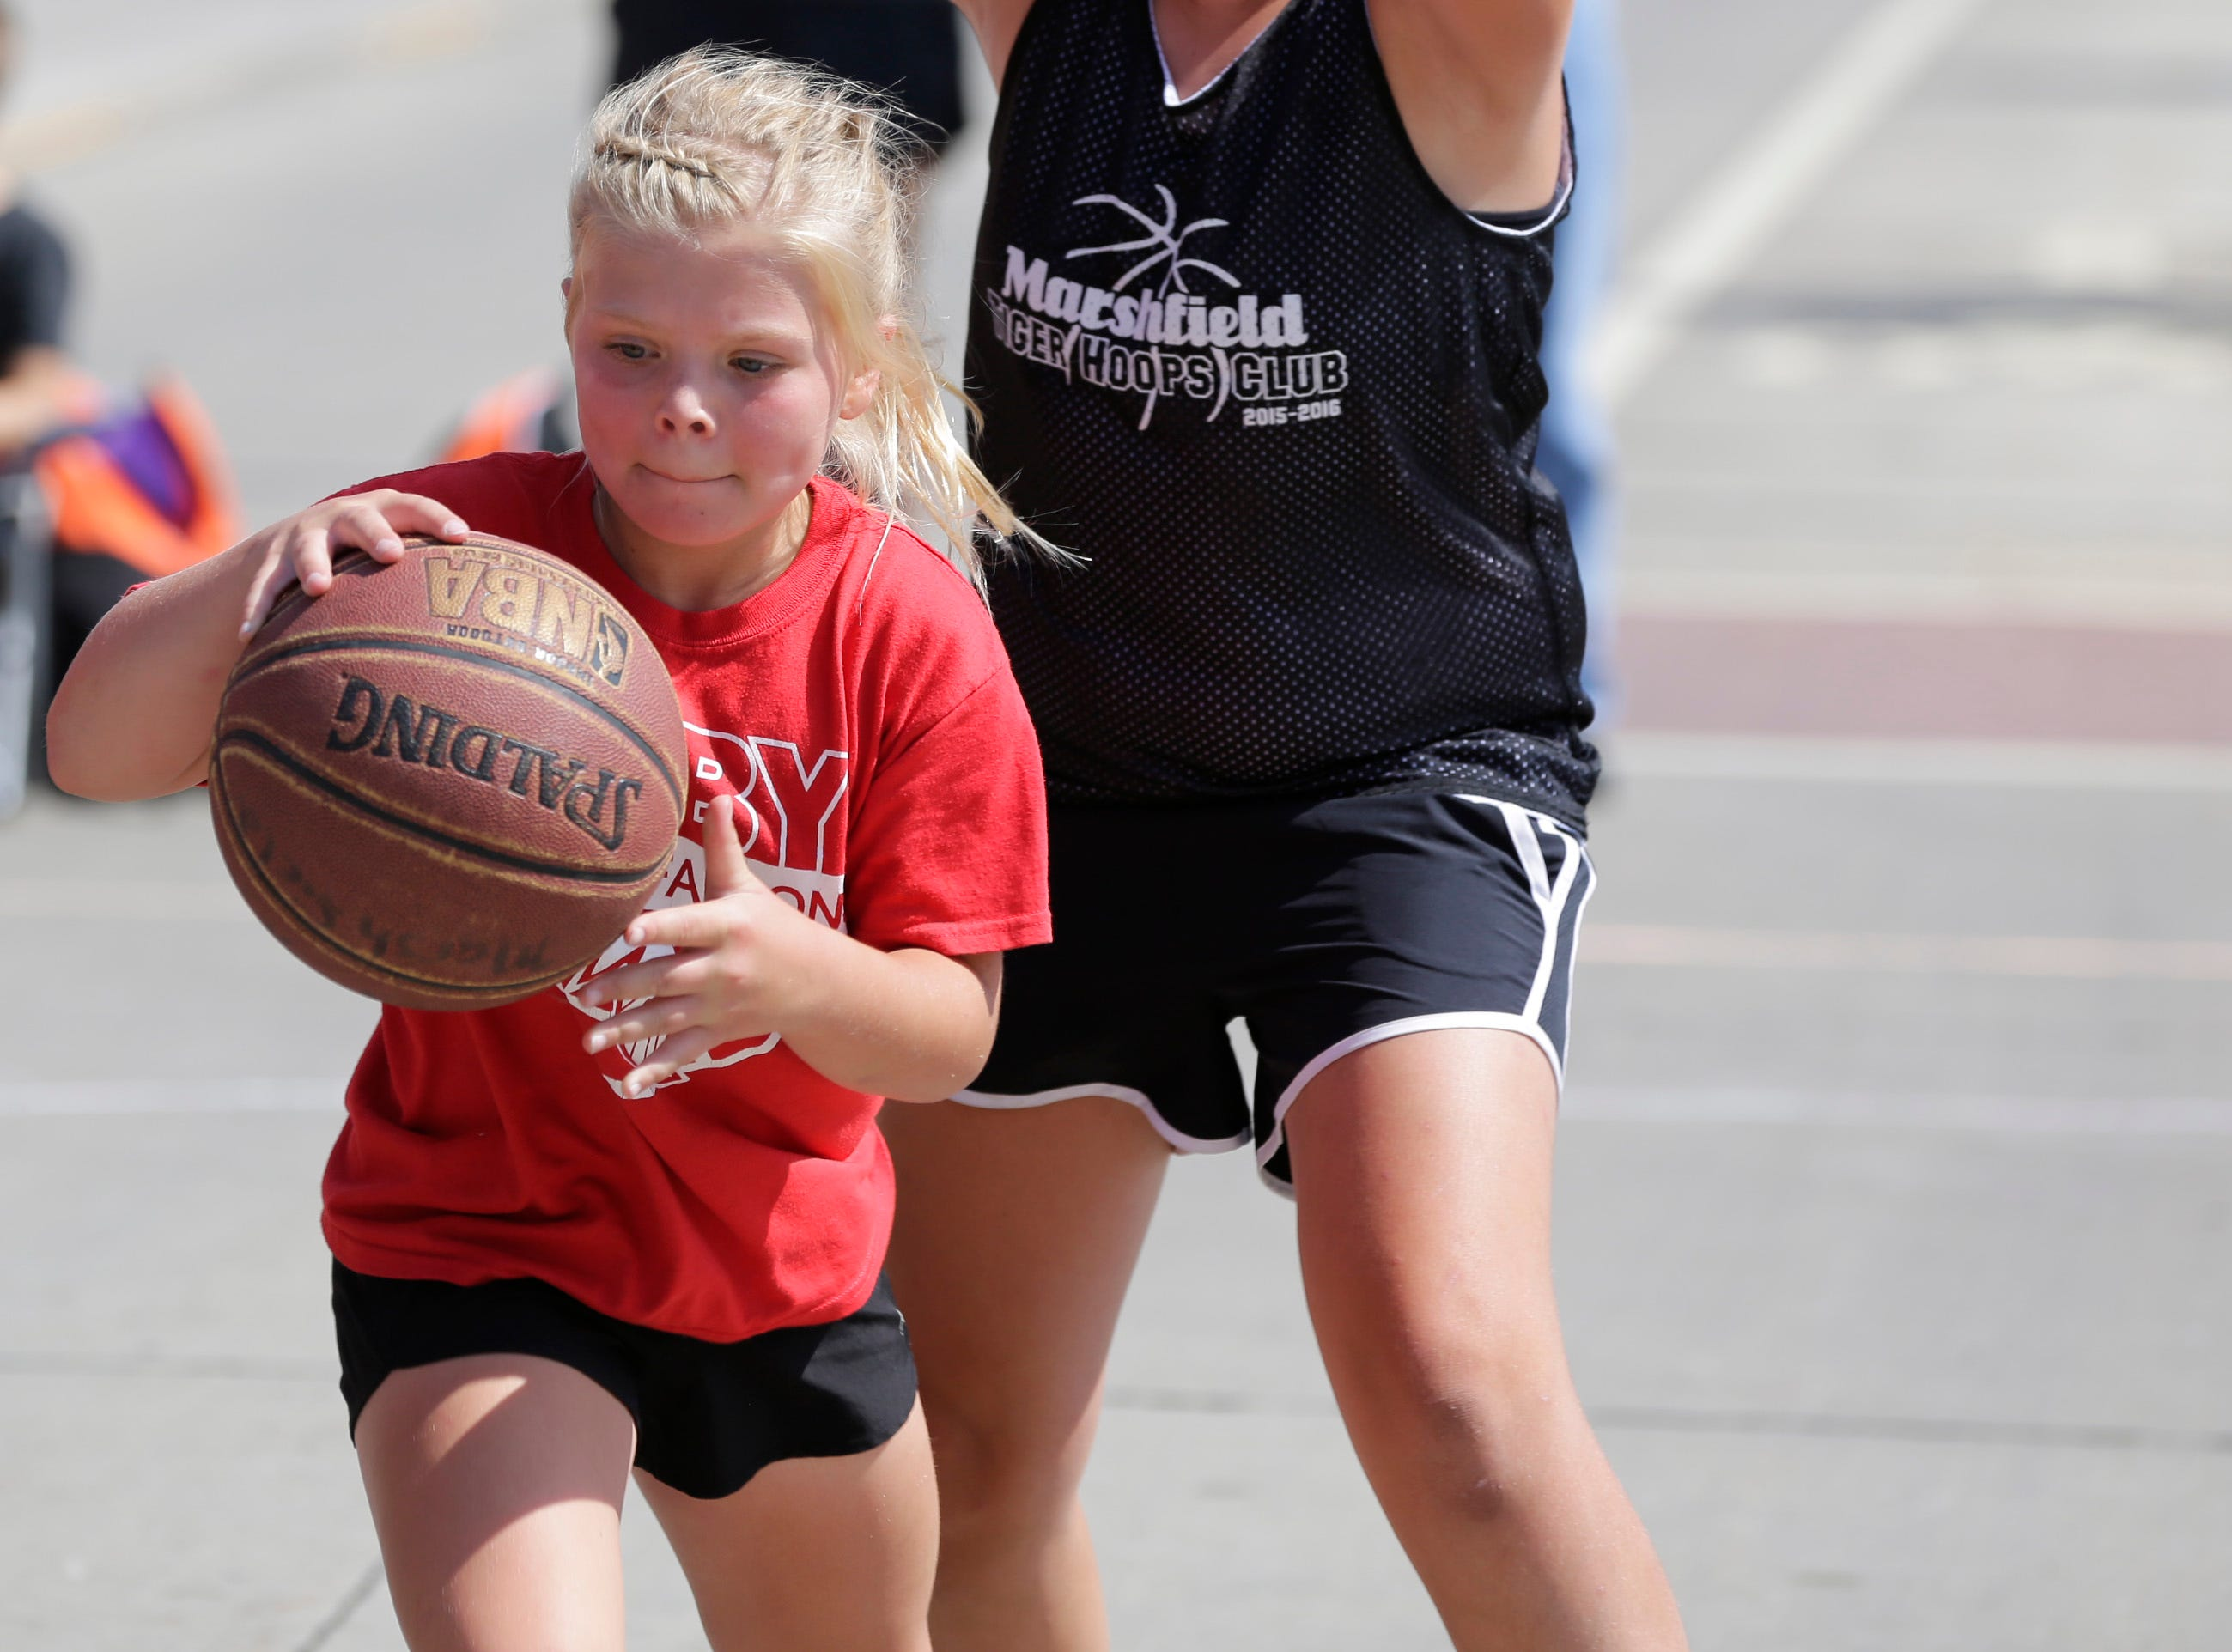 Kendall Rose, 9, from Dorchester, plays in the 3-on-3 basketball tournament during Hub City Days in downtown Marshfield Saturday, July 28, 2018.